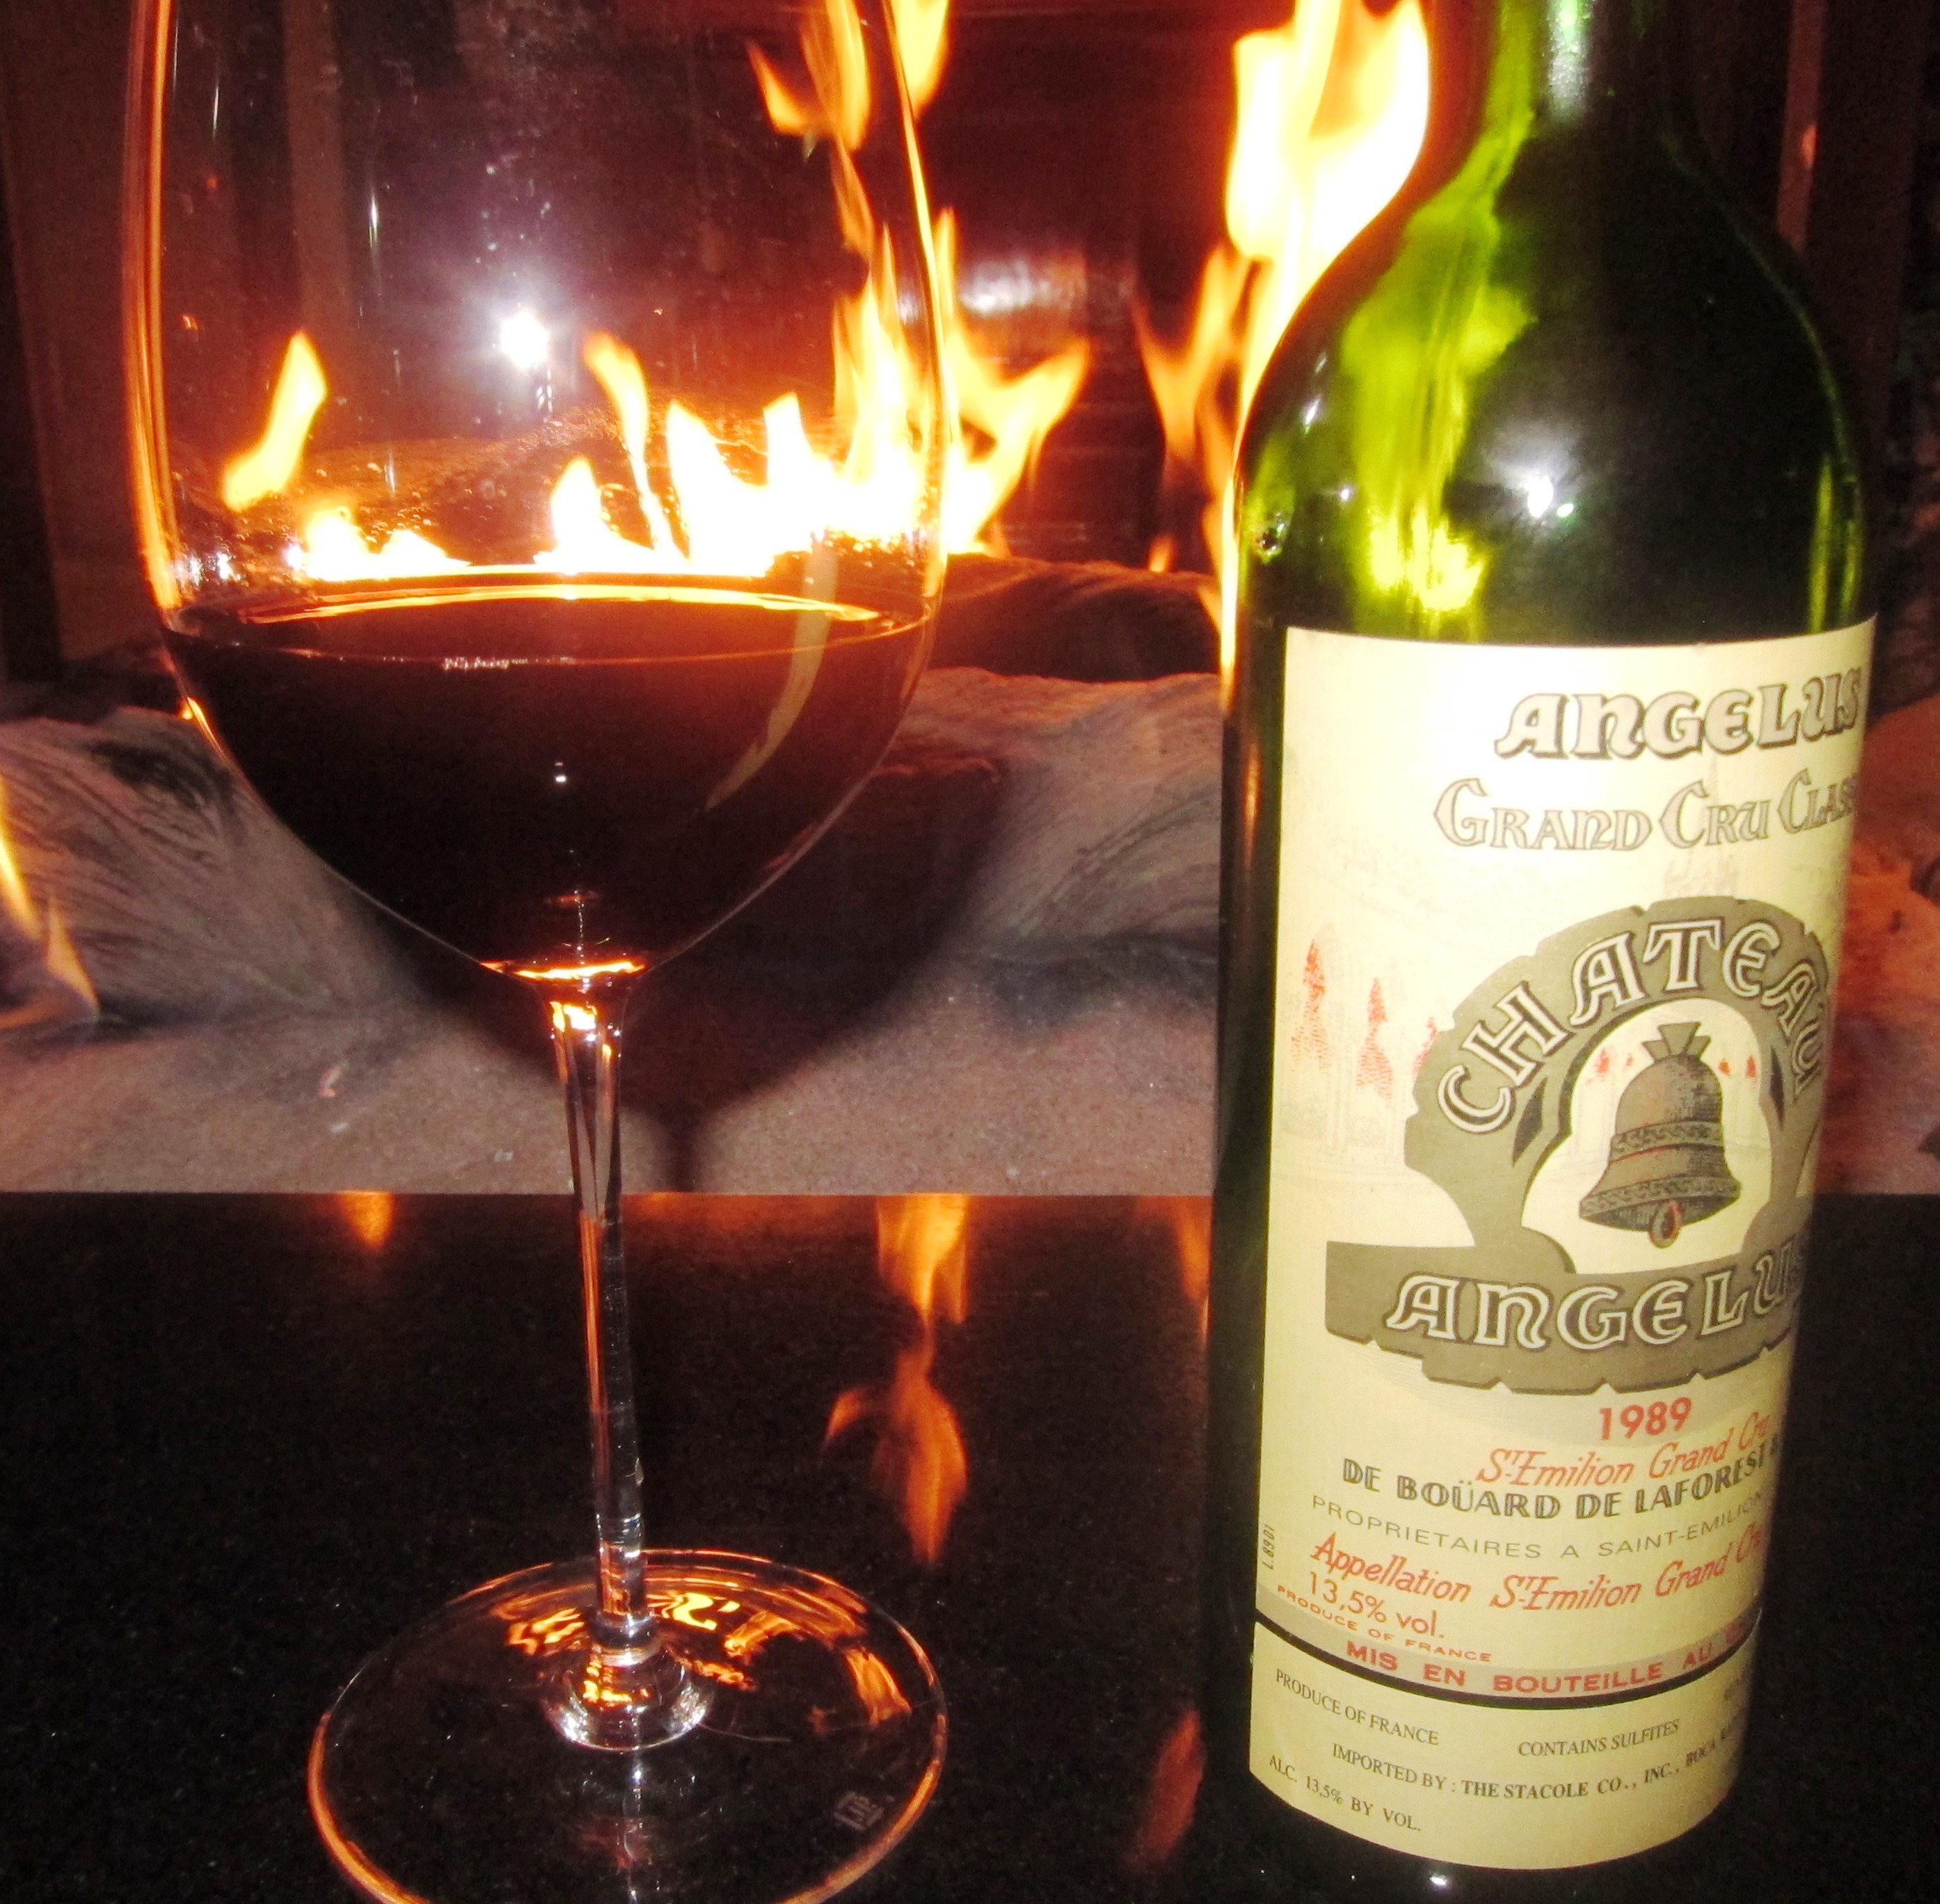 Chateau Angelus St. Emilion Bordeaux wine 1989